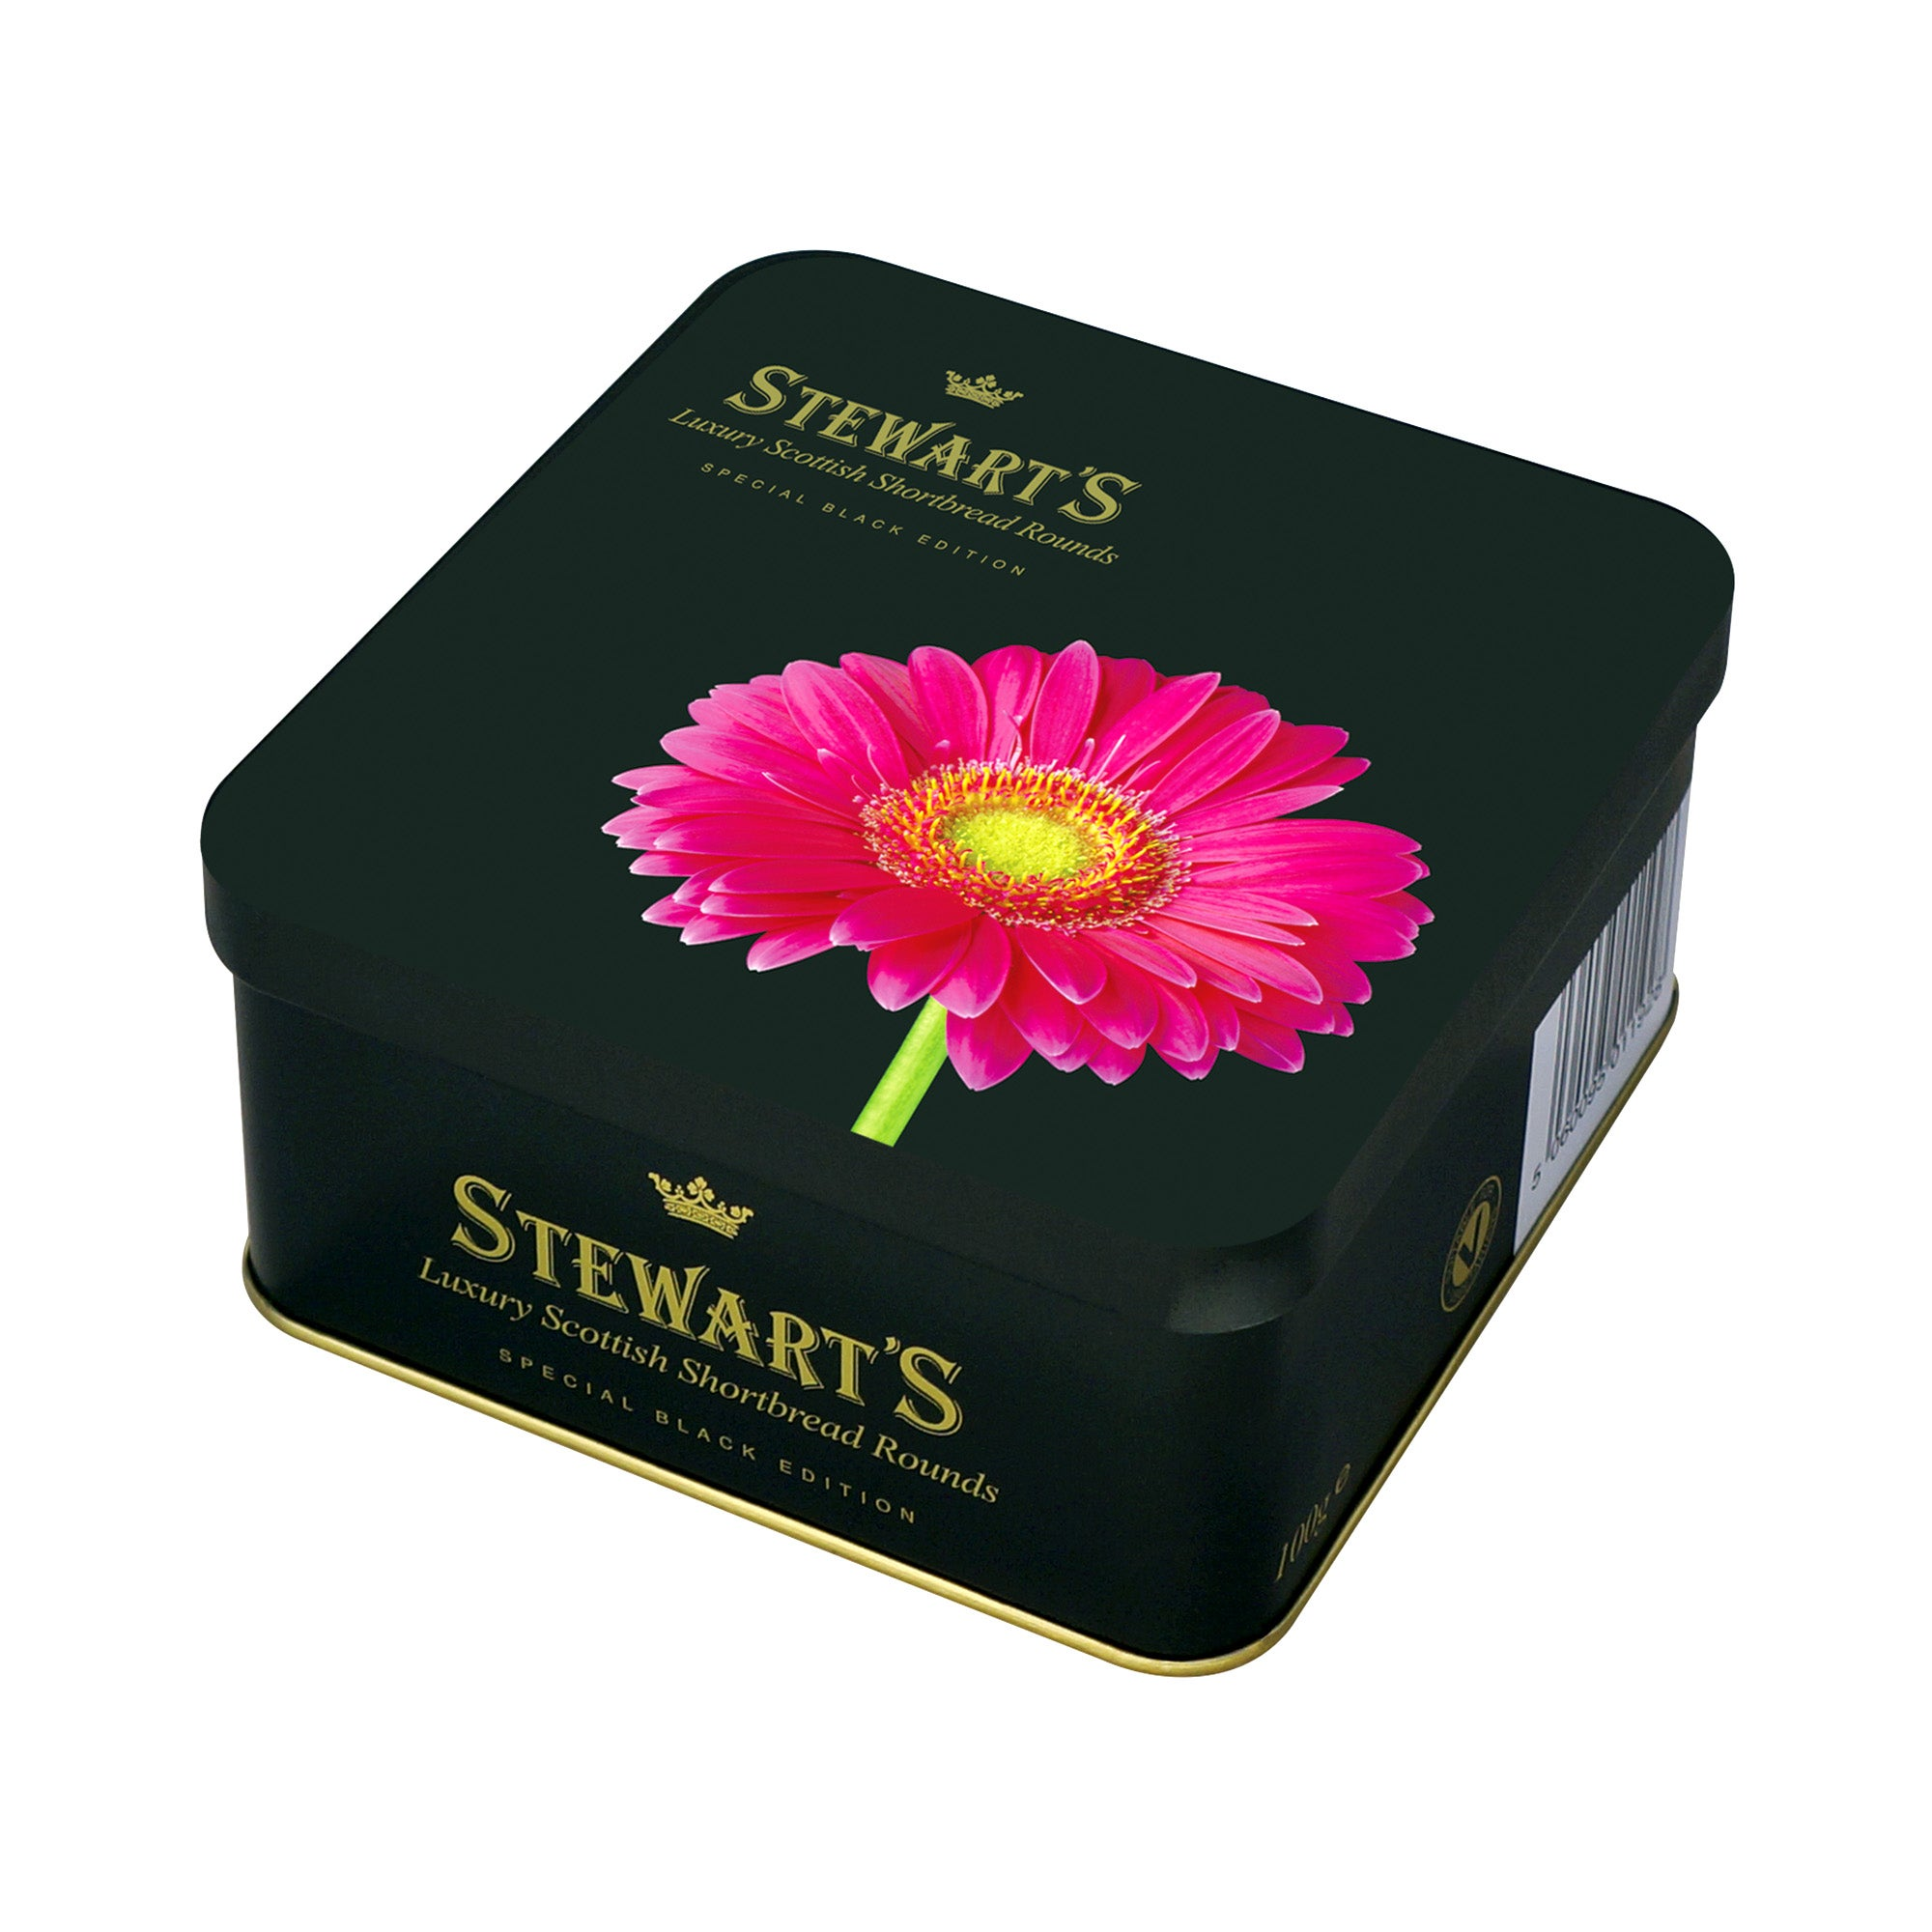 Stewart's Flower Gift Tin With Shortbread Rounds